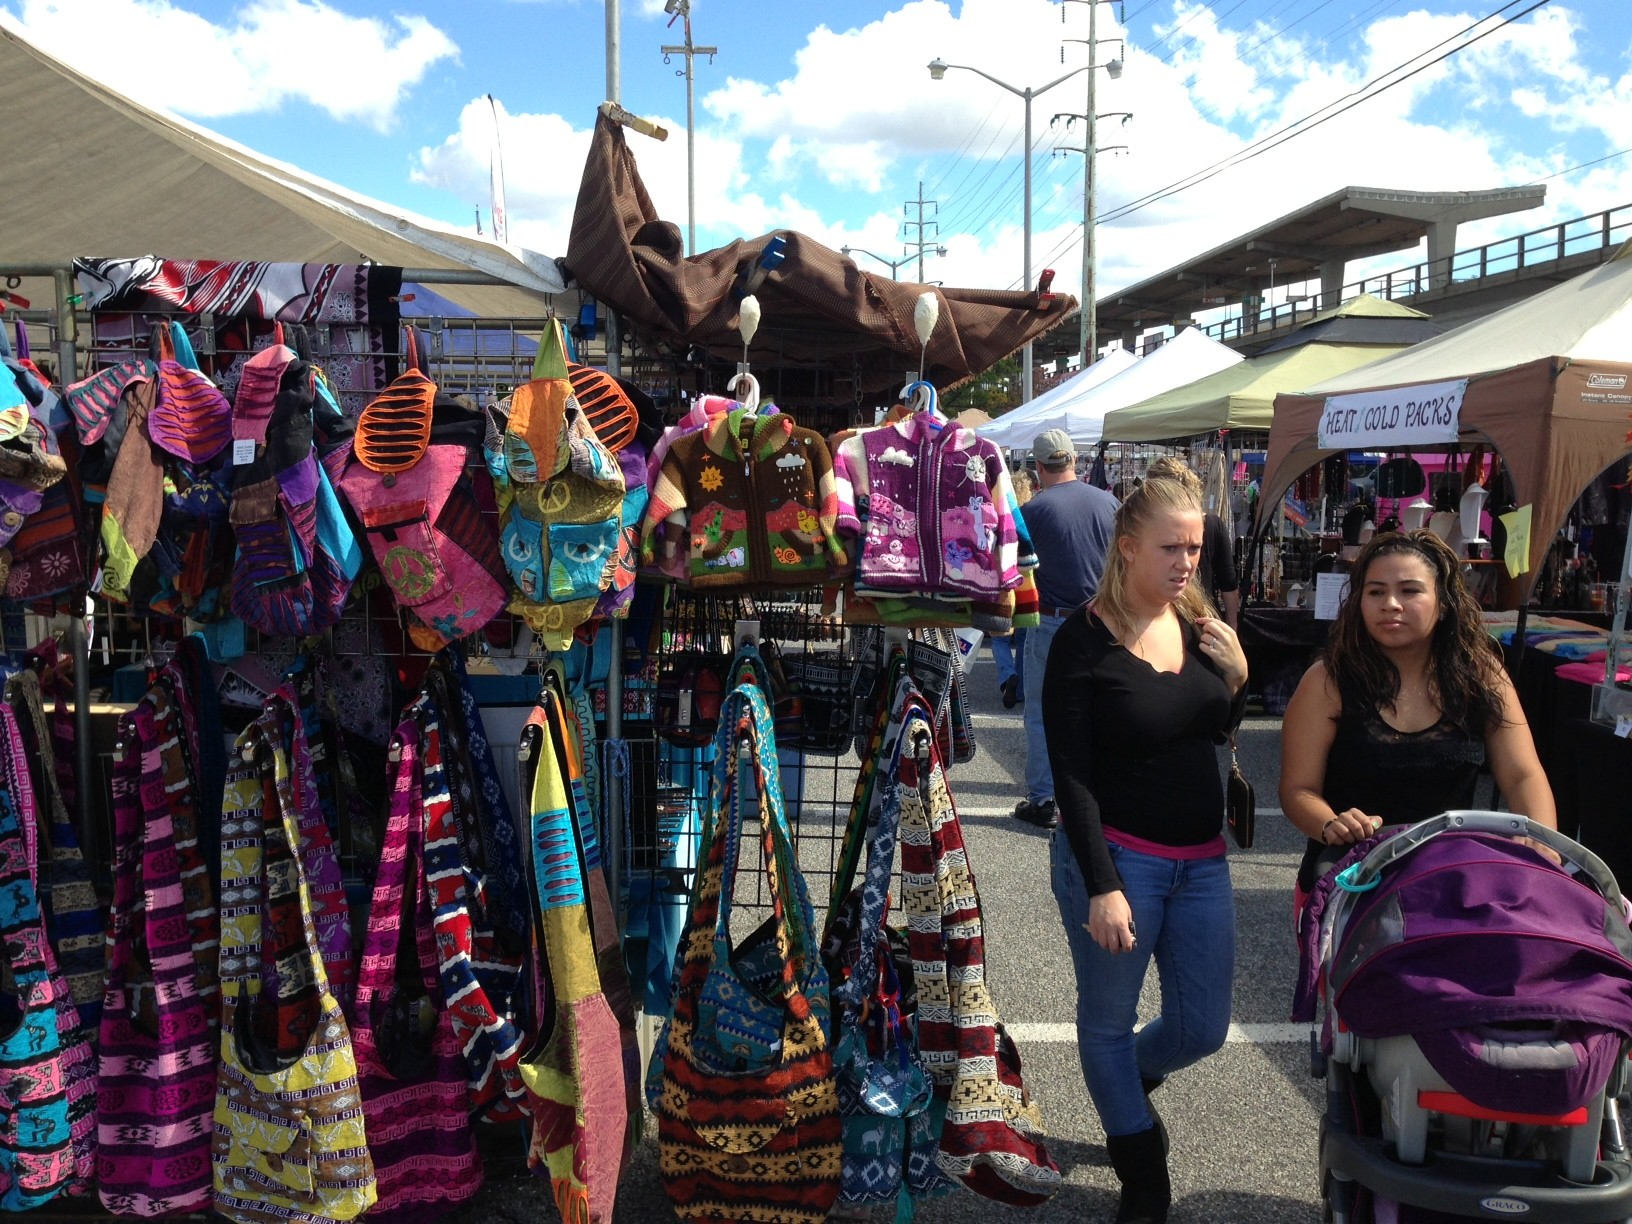 More than 150 crafts vendors were on hand, selling anything and everything, from scarves to signs to mirrors and more.